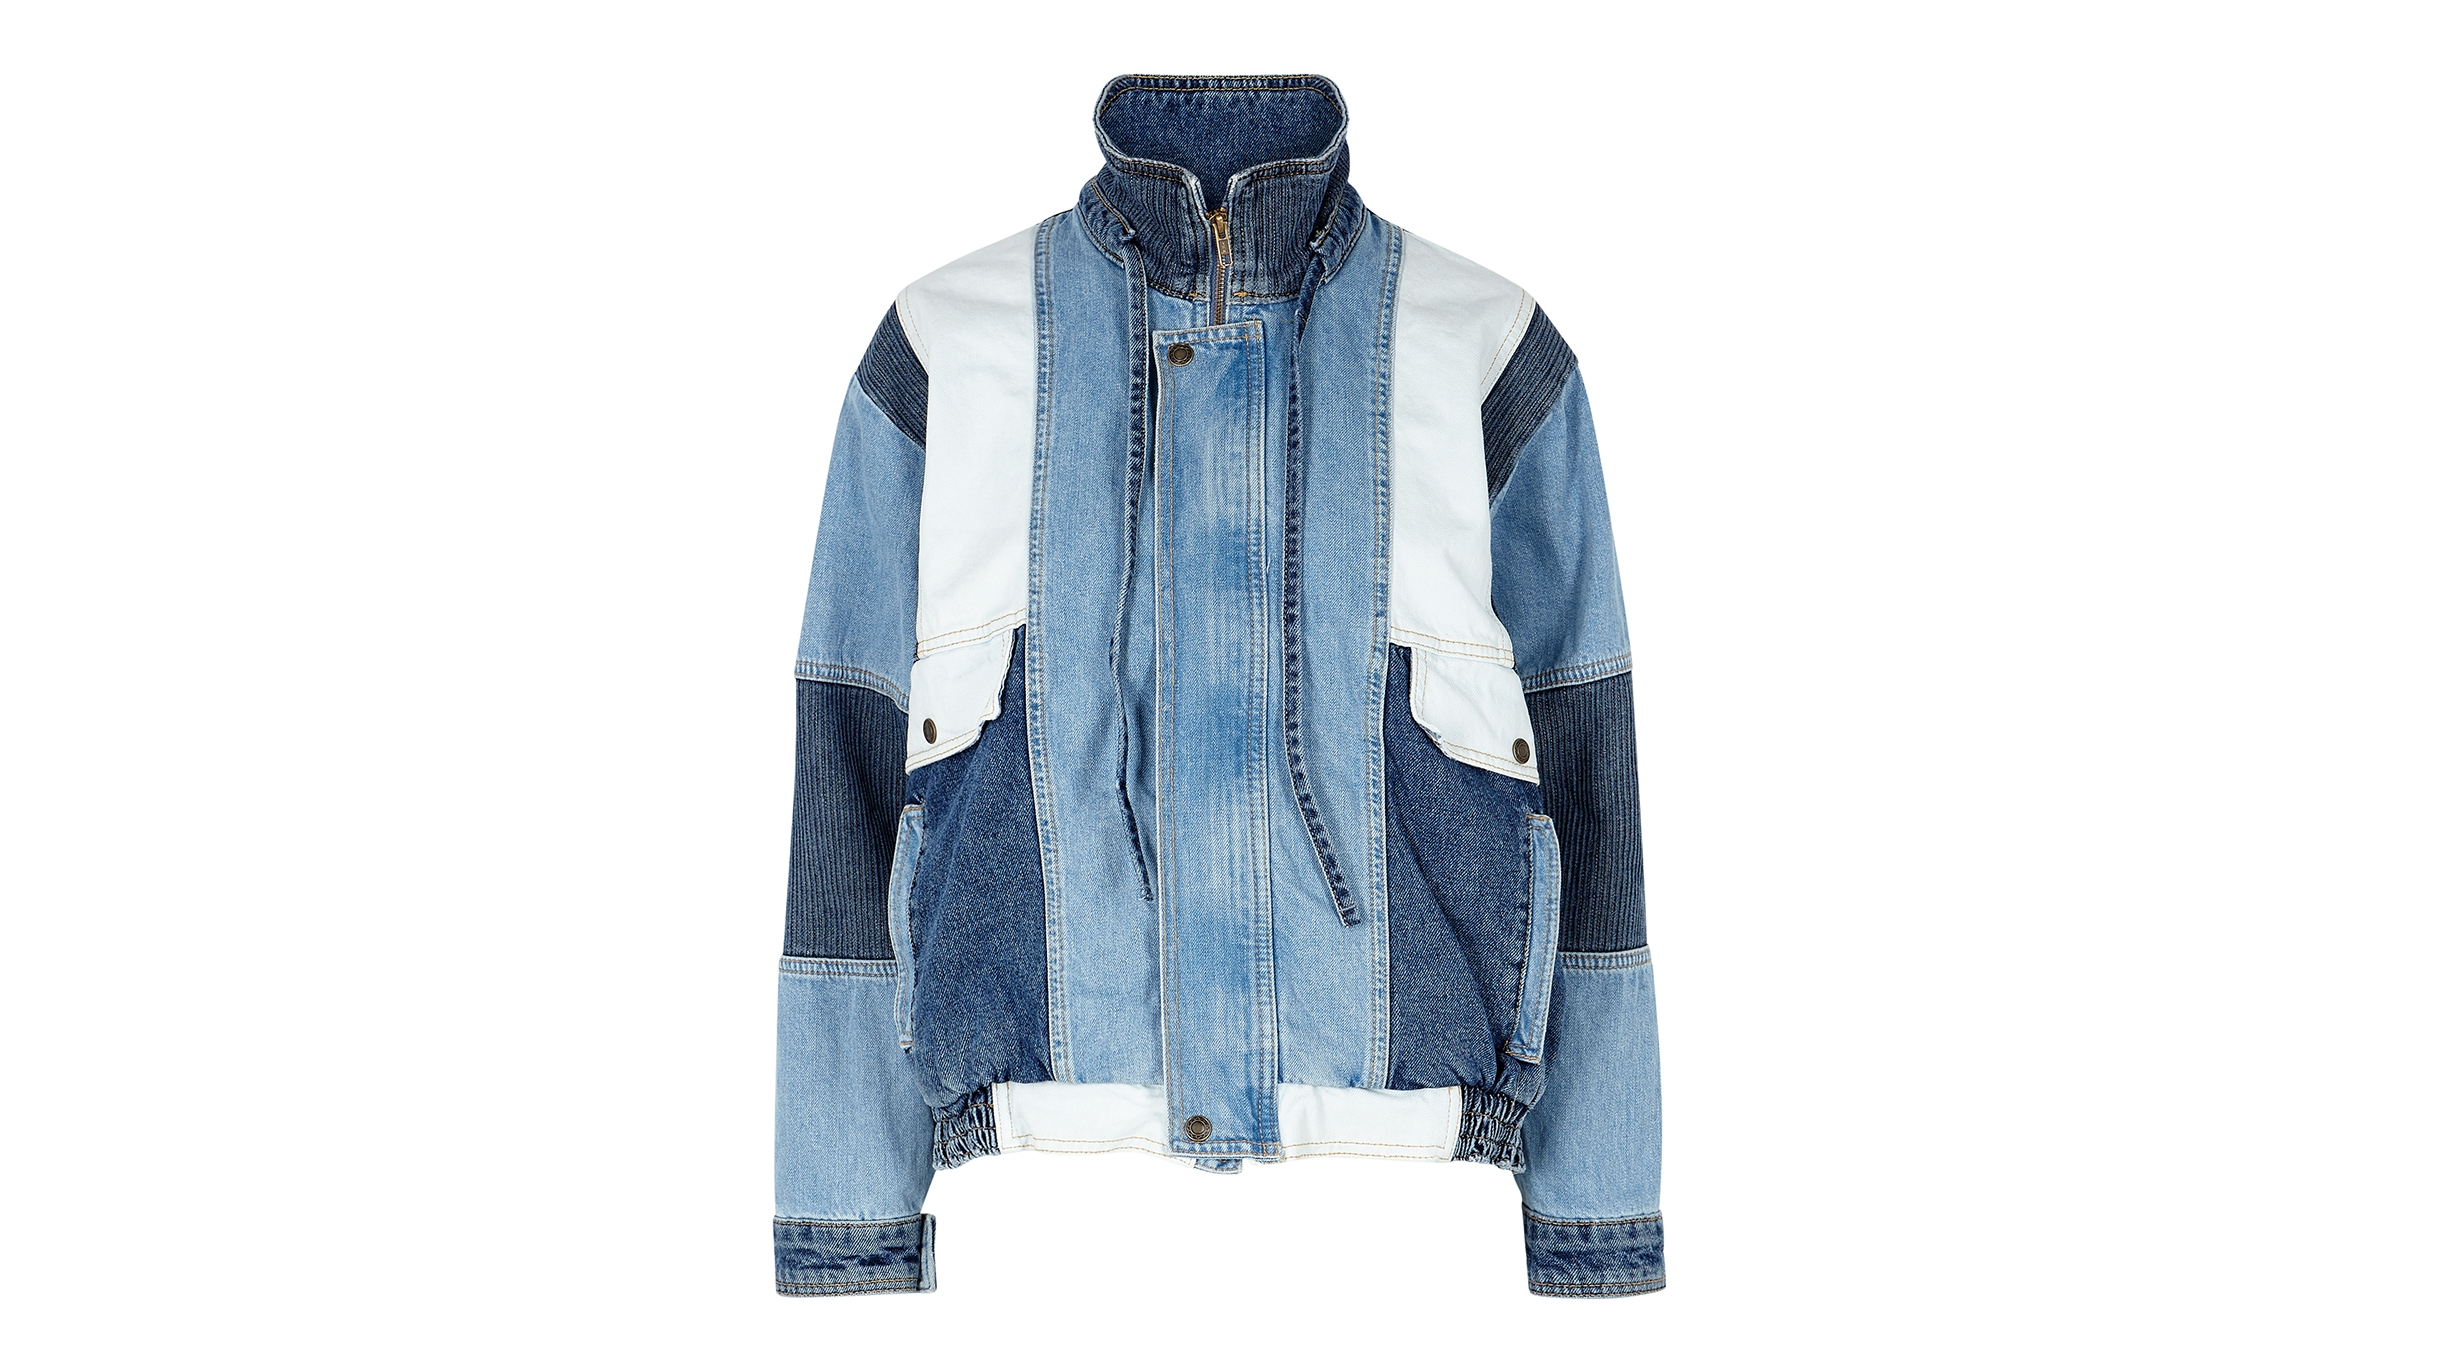 bfc37a790 Panel patchwork denim bomber jacket